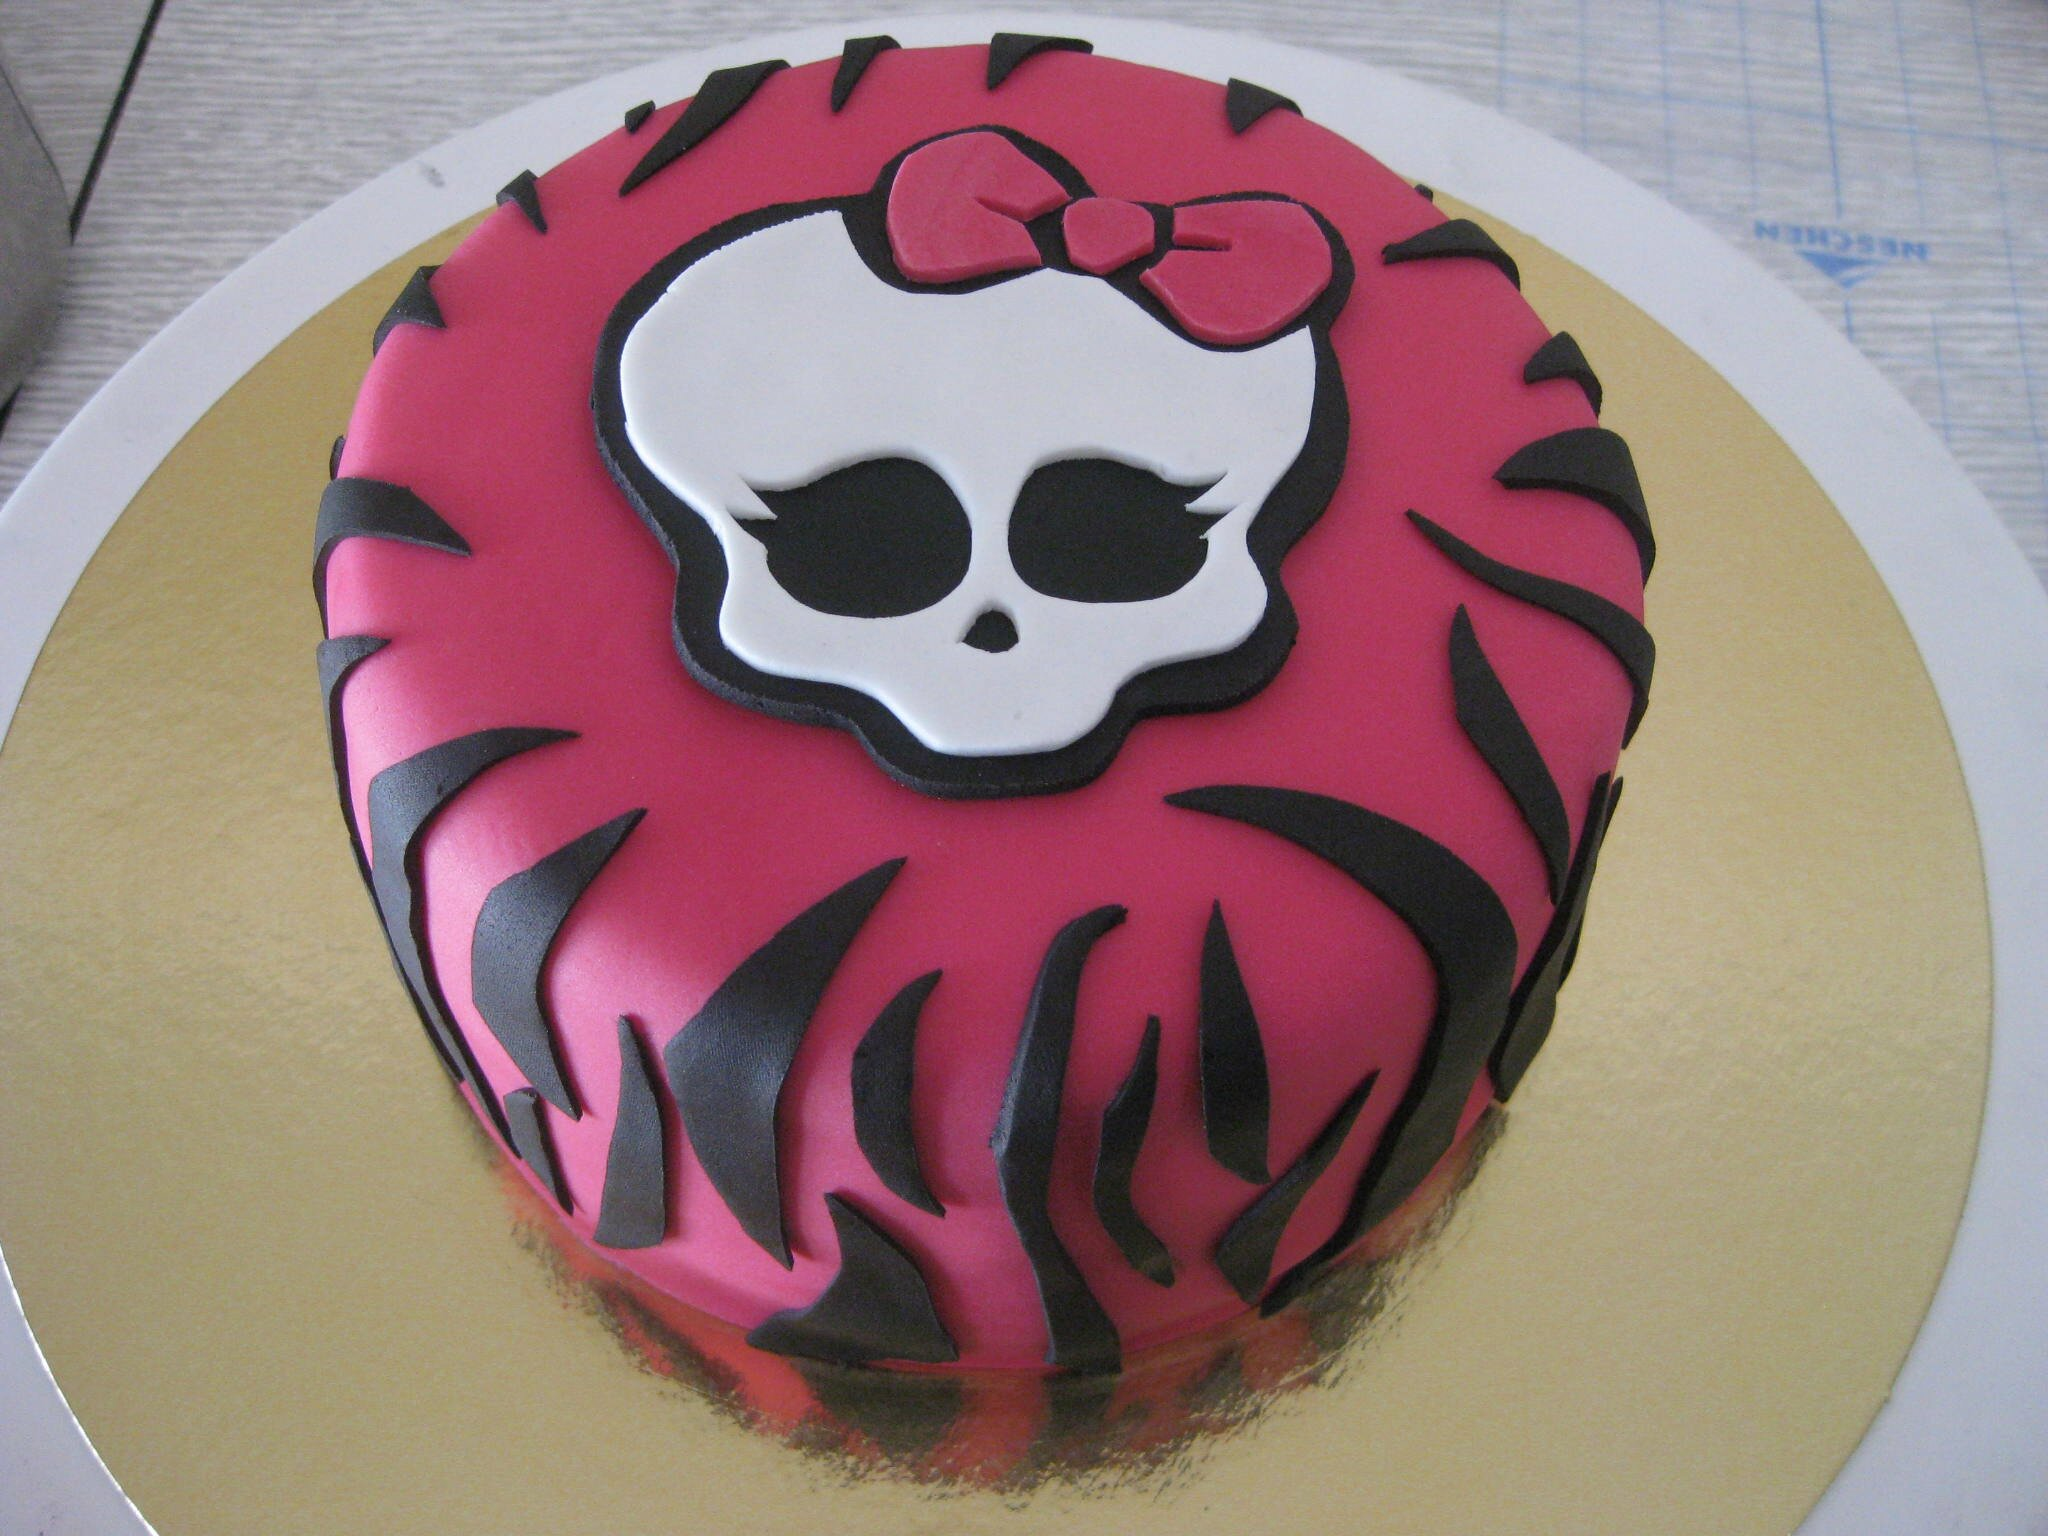 Favori Gâteau Monster High n°2 - Monster High Cake - Les Hobbies d'Aurélie PF37